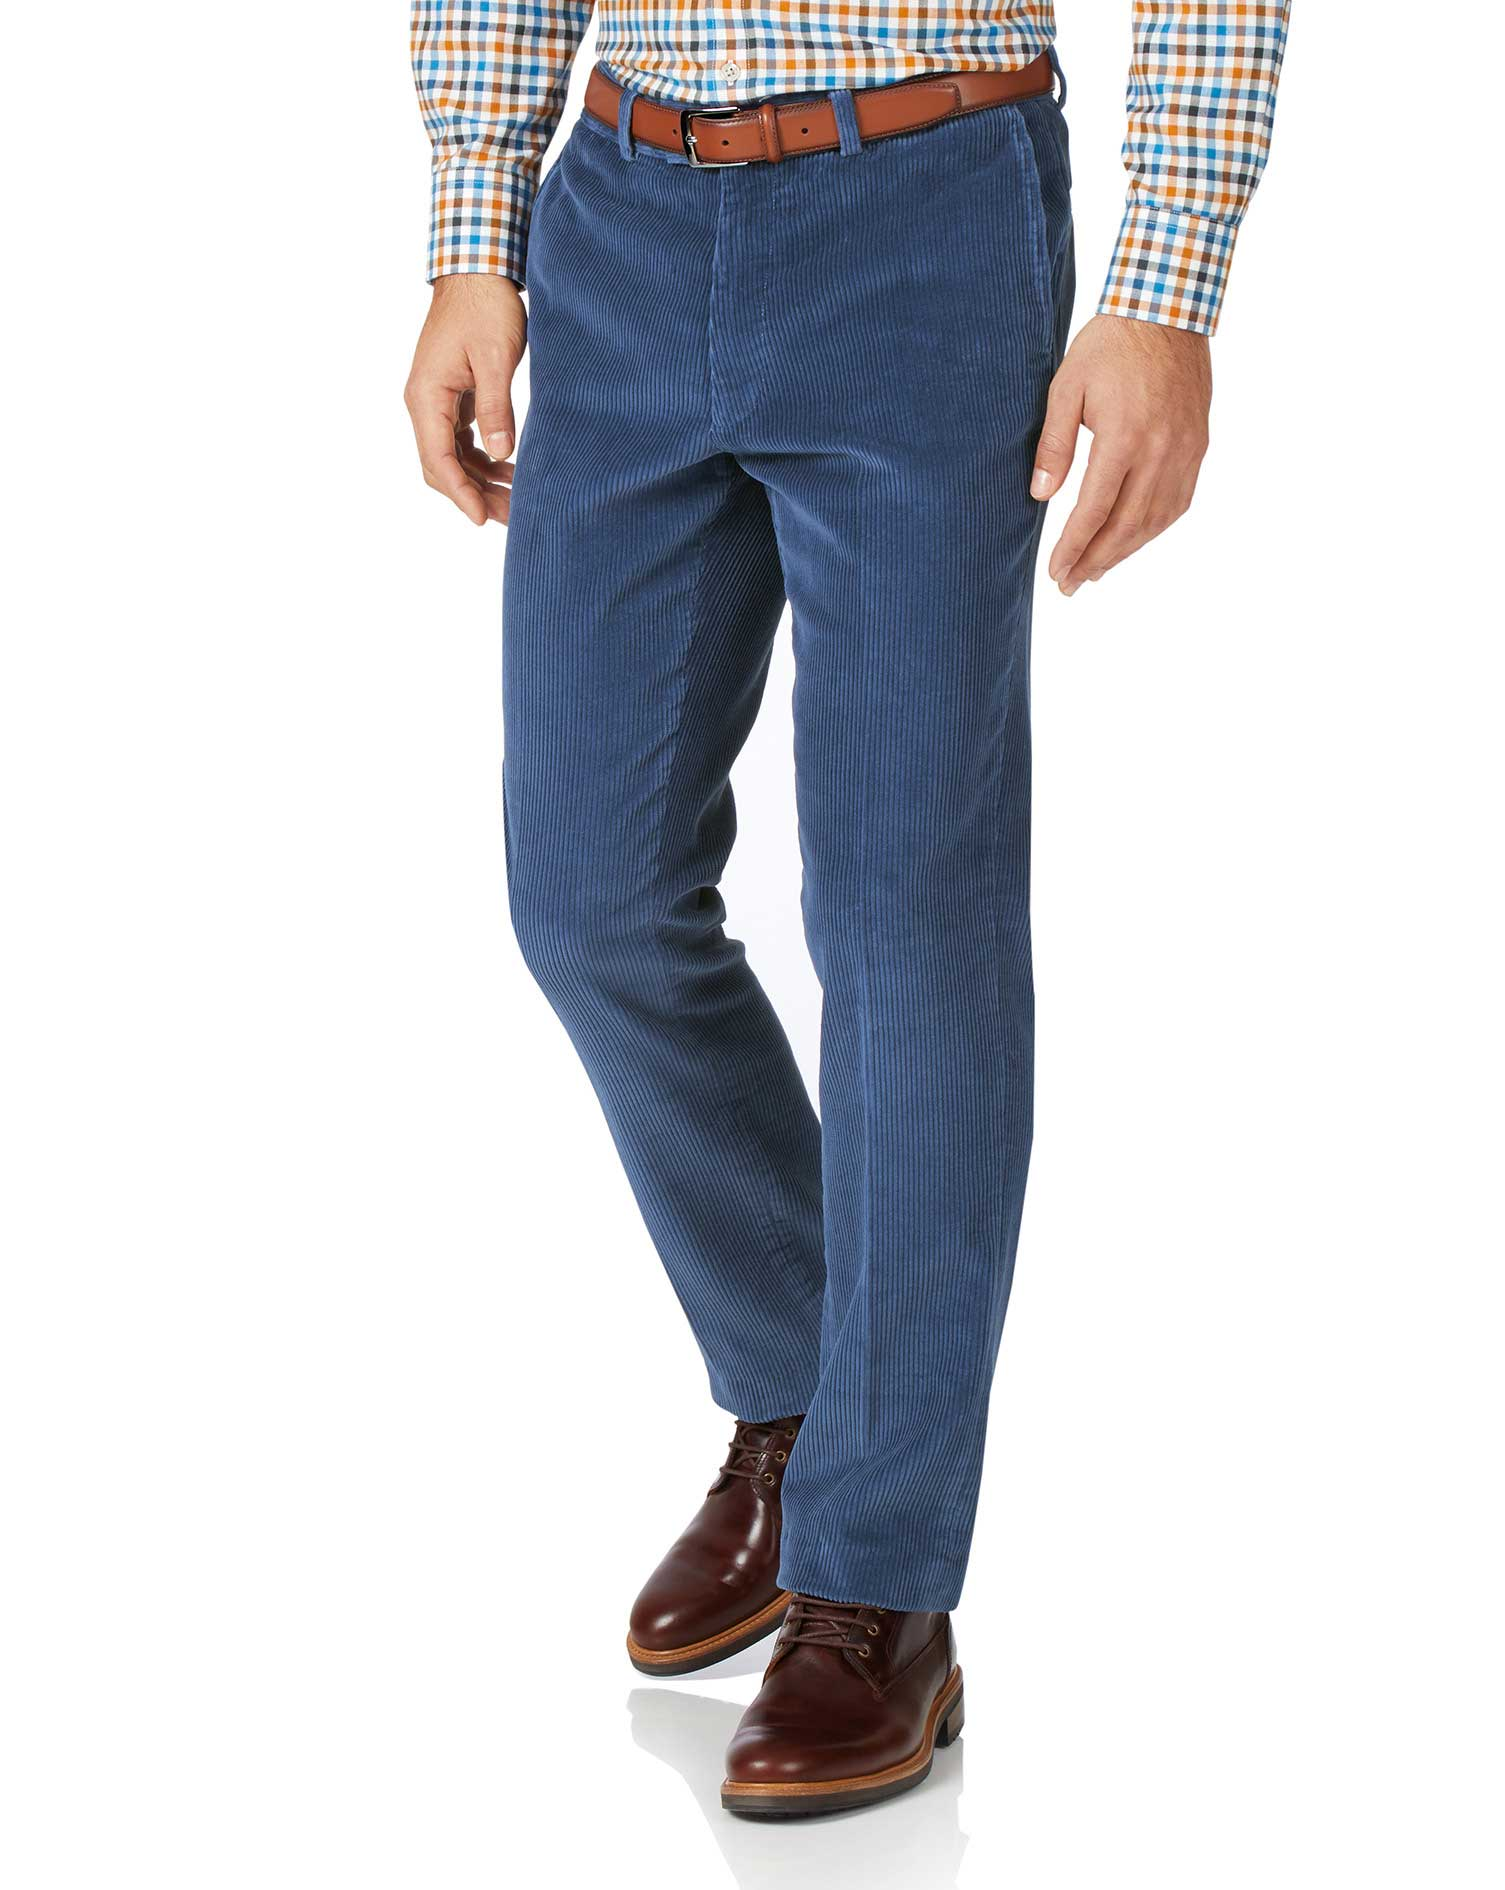 Airforce Blue Classic Fit Jumbo Corduroy Trousers Size W32 L30 by Charles Tyrwhitt